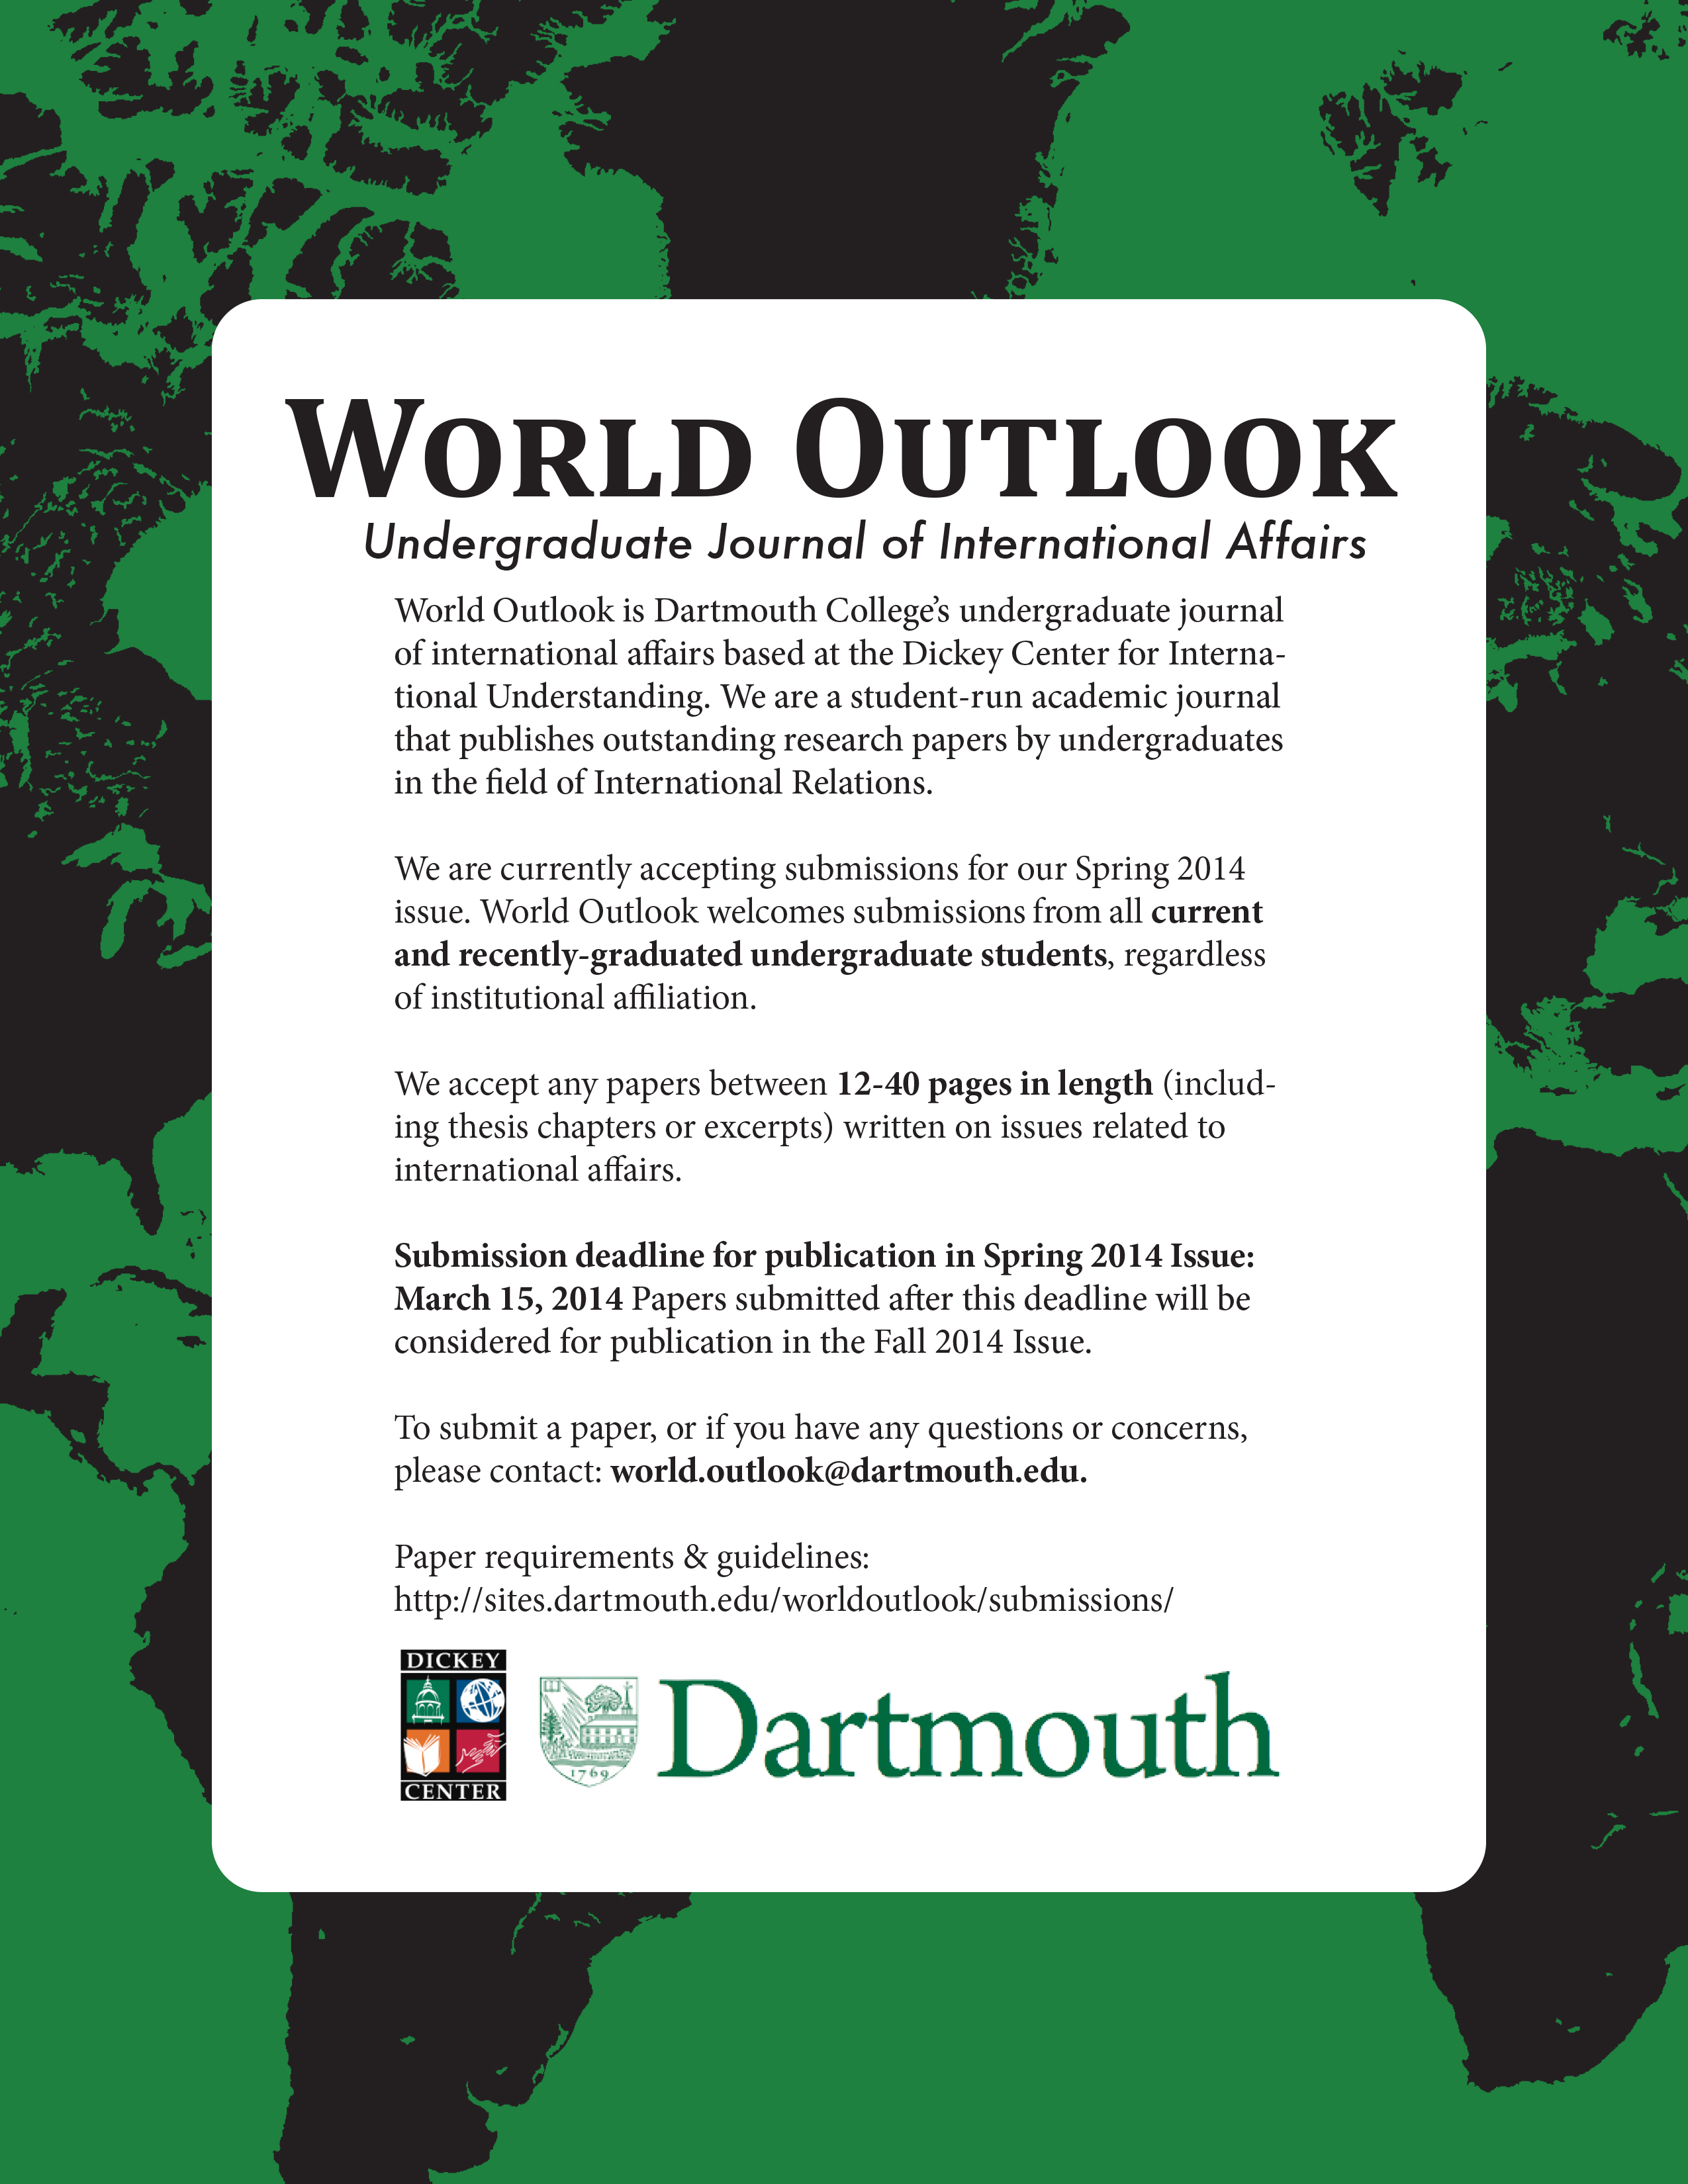 worldoutlook_call_for_submissions_2014